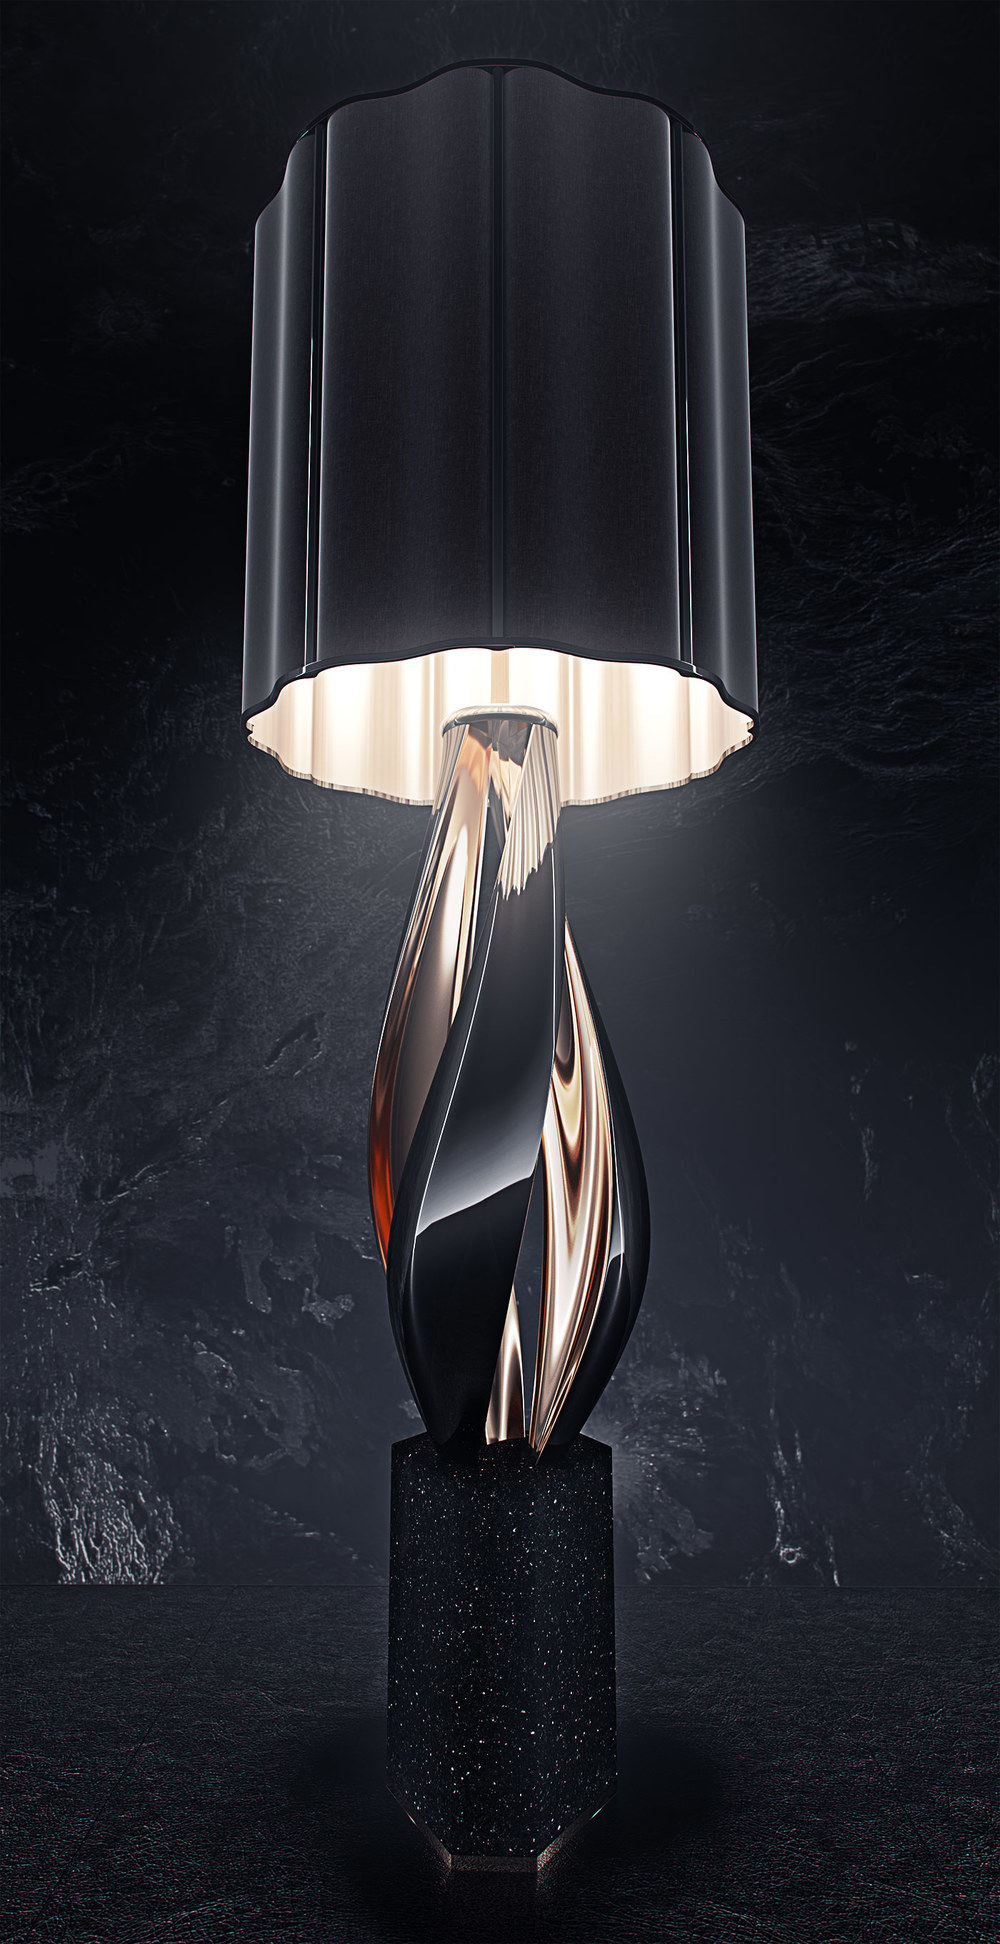 luxury lighting concept, Nightshade Lamp 5